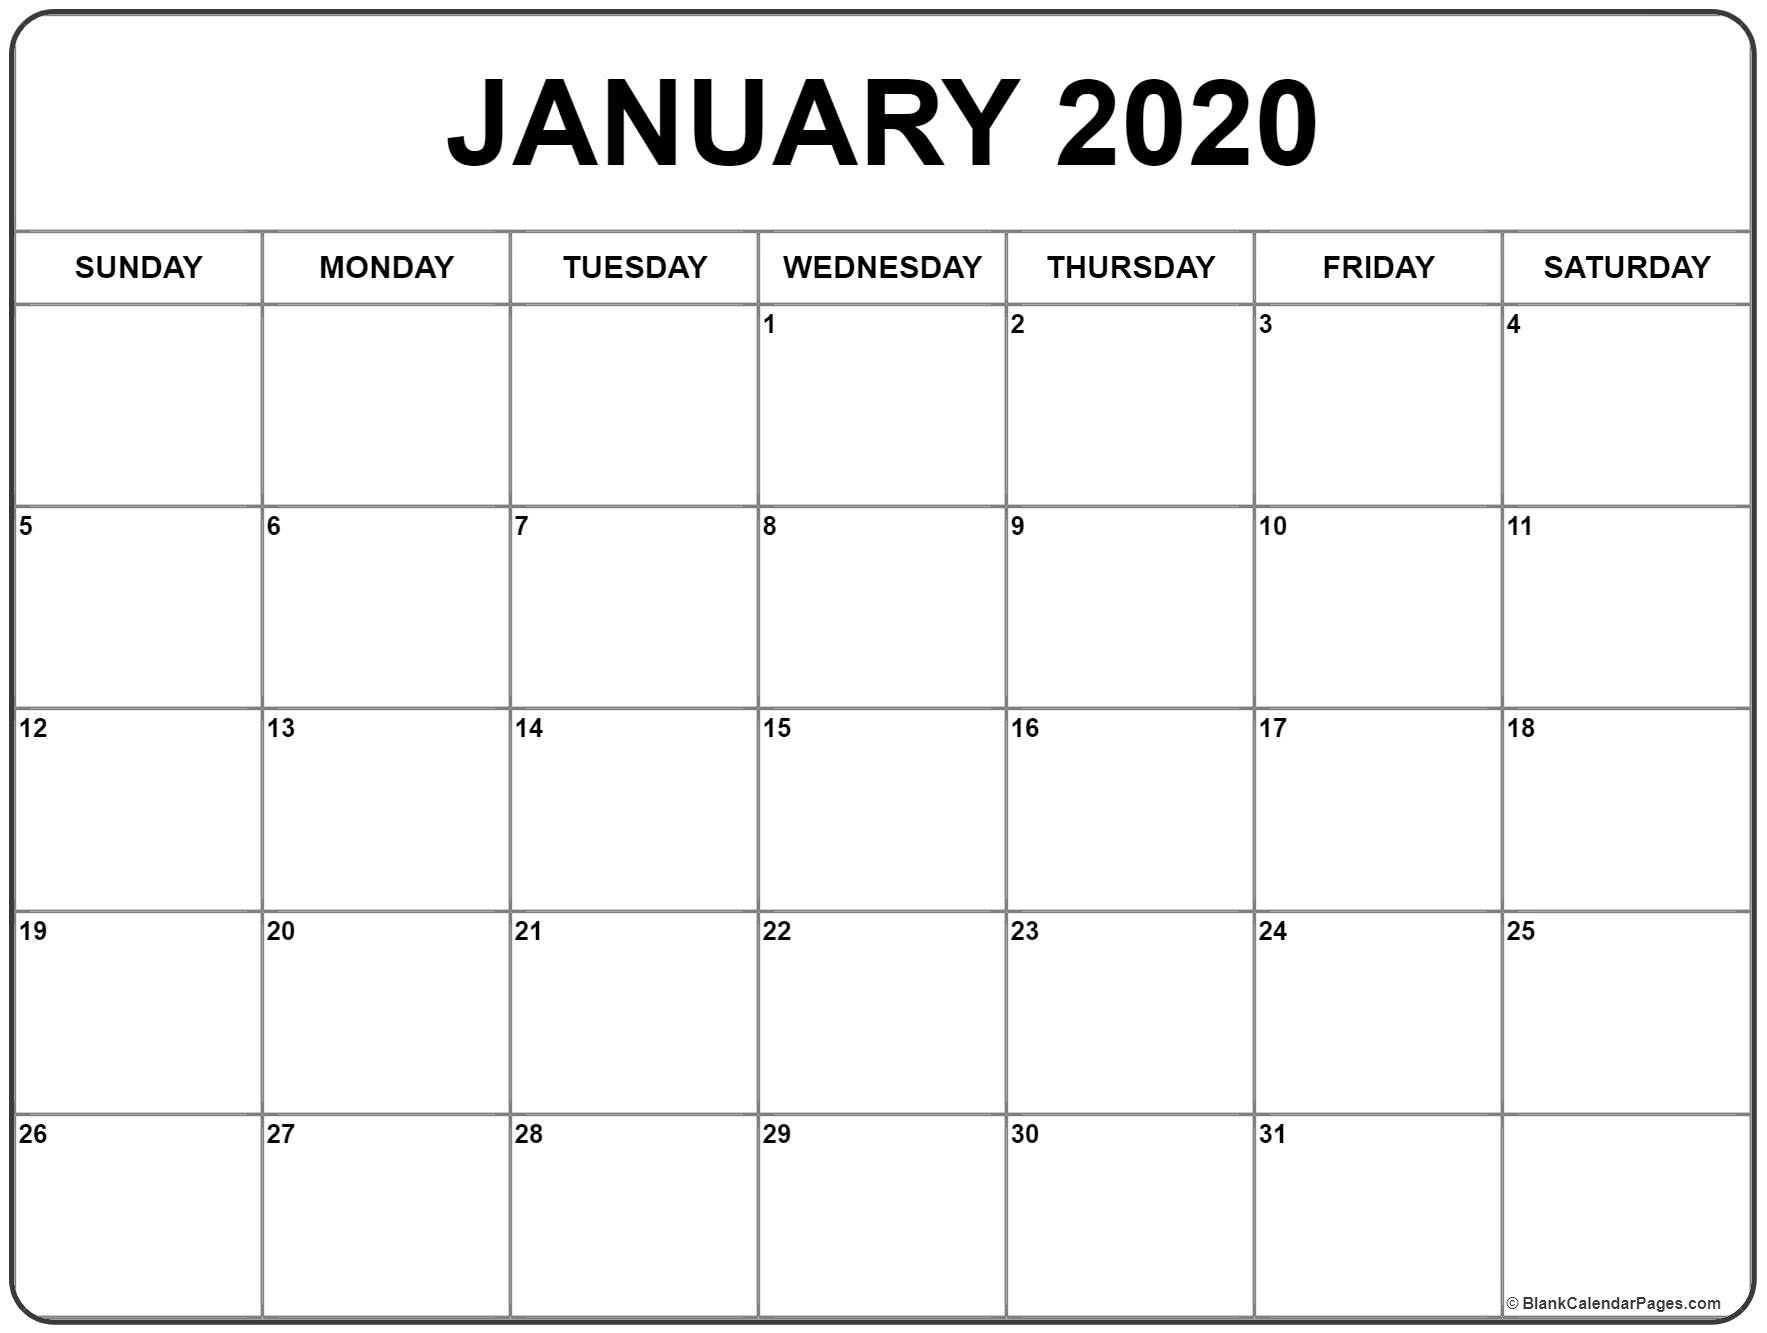 Blank Calendar Jan 2020 Printable | Isacl-January 2020 Calendar Waterproof